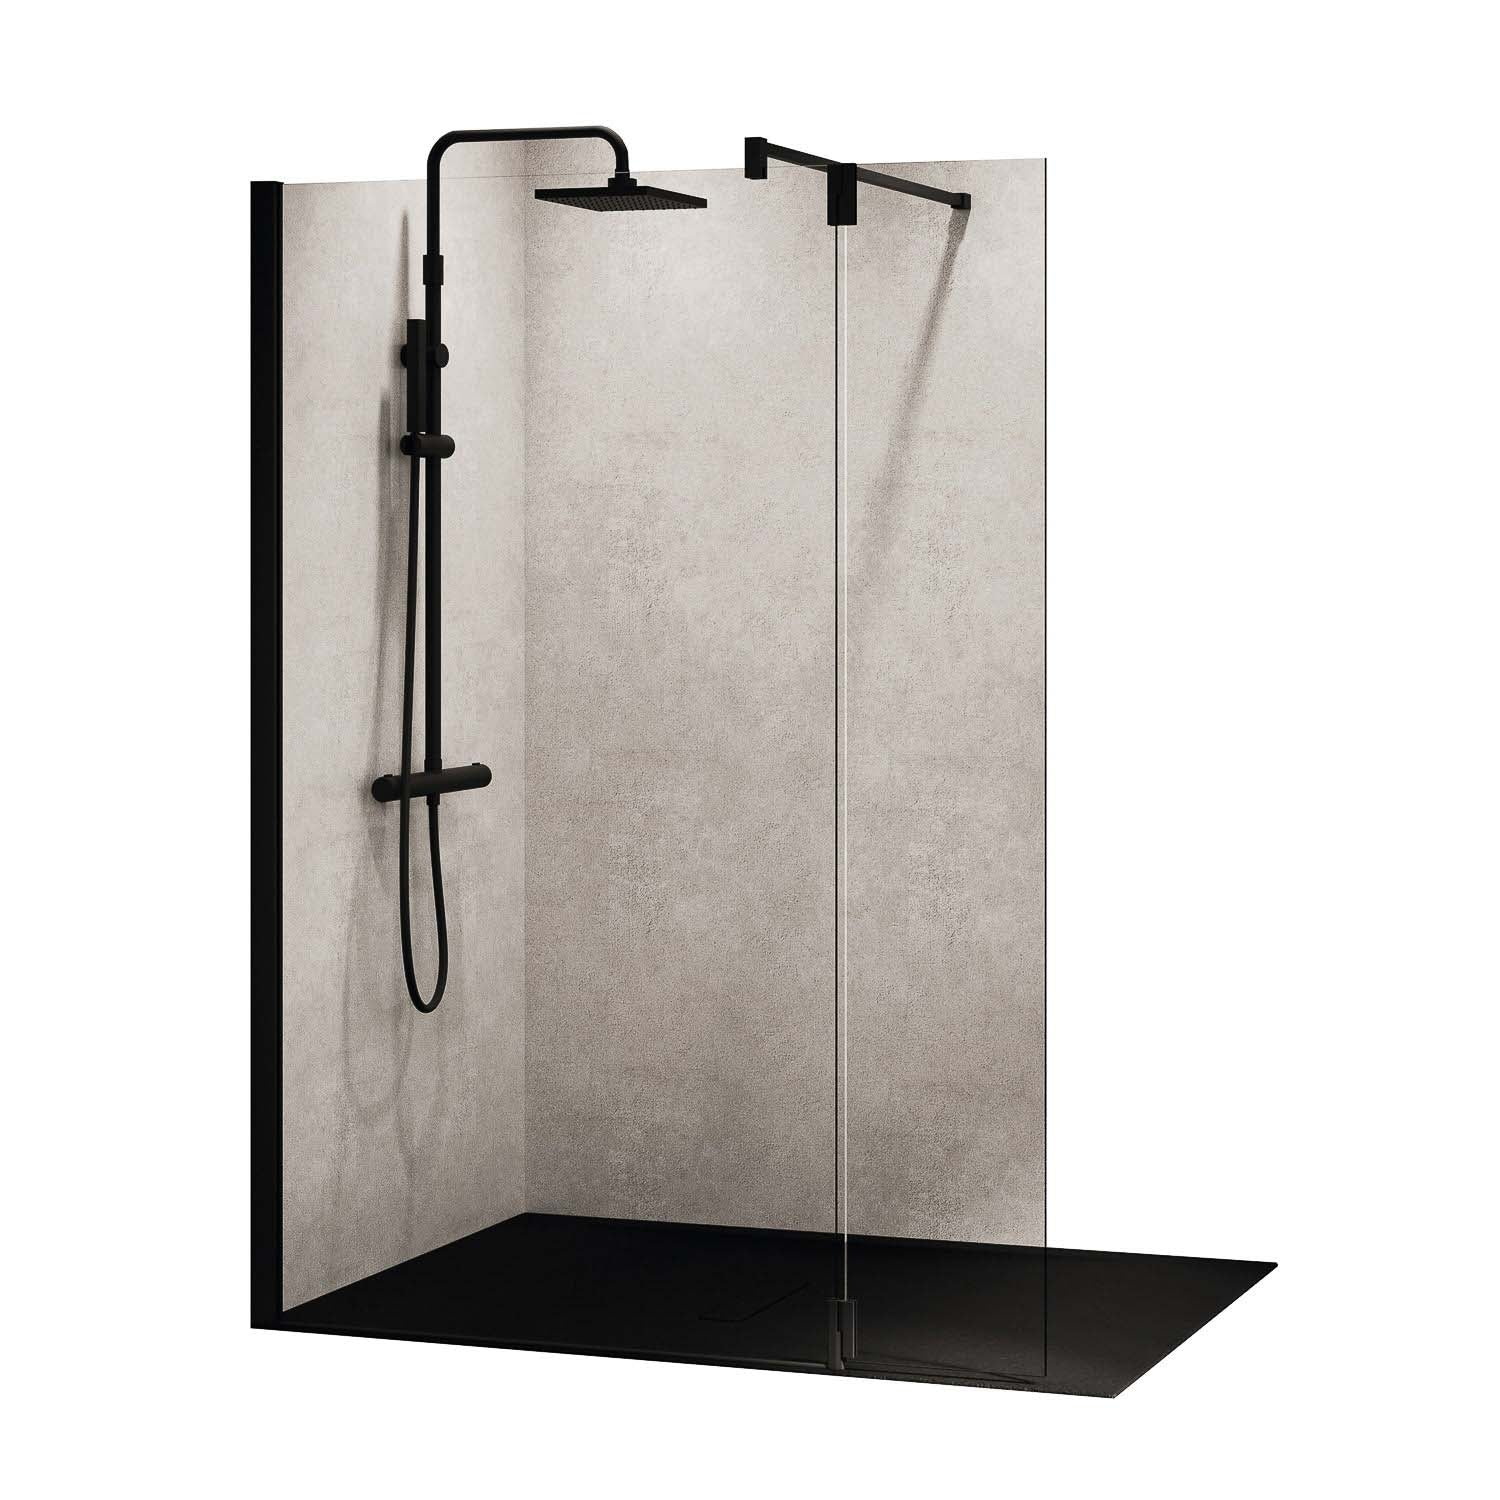 770-800mm Ergo Wet Room Screen Clear Glass with a matt black finish on a white background